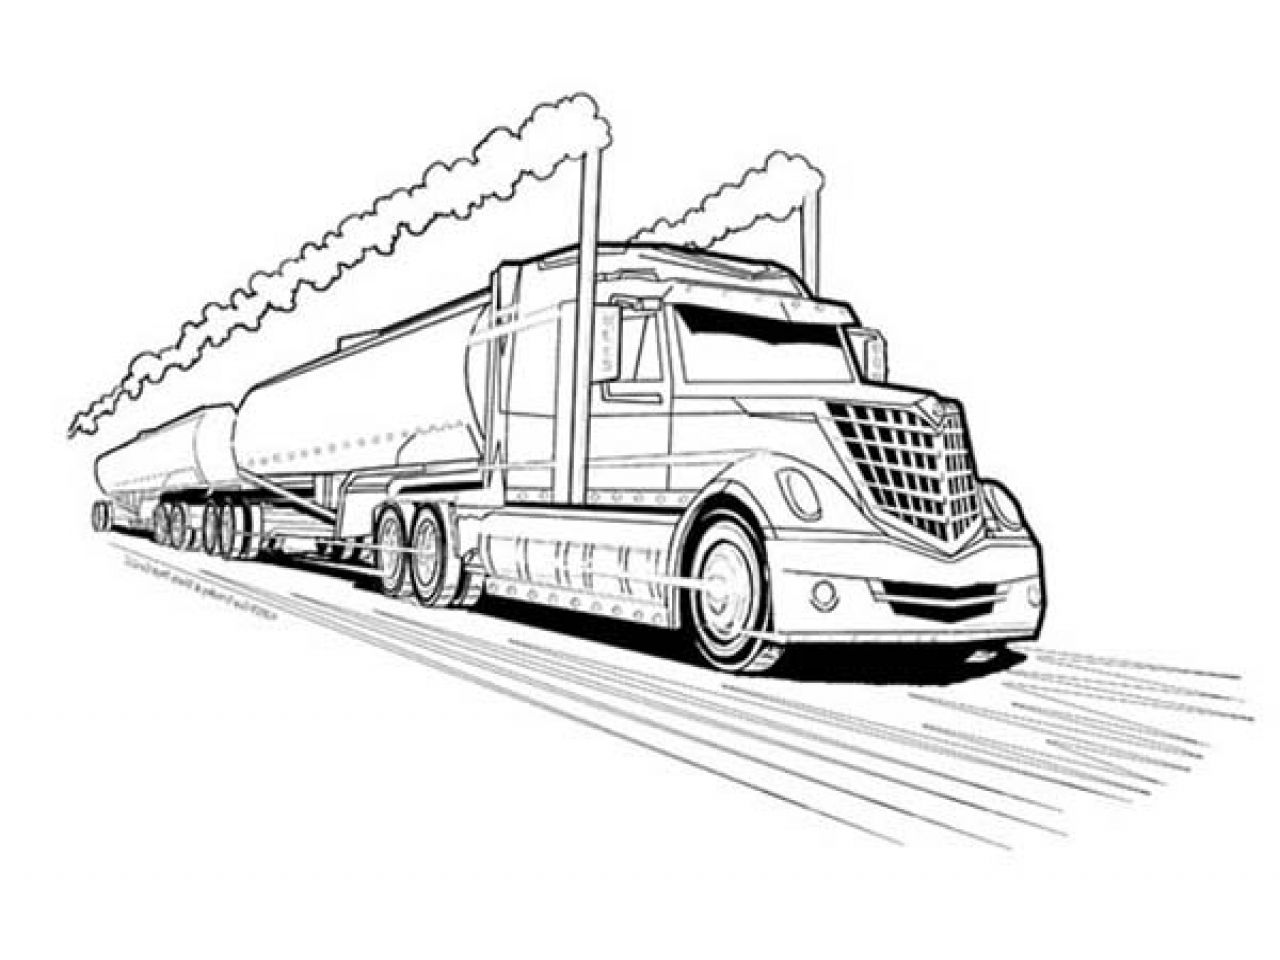 Tractor Trailor And Coloring Sheets Double Tanker Trailer Truck Truck Coloring Pages Coloring Pages Tractor Coloring Pages